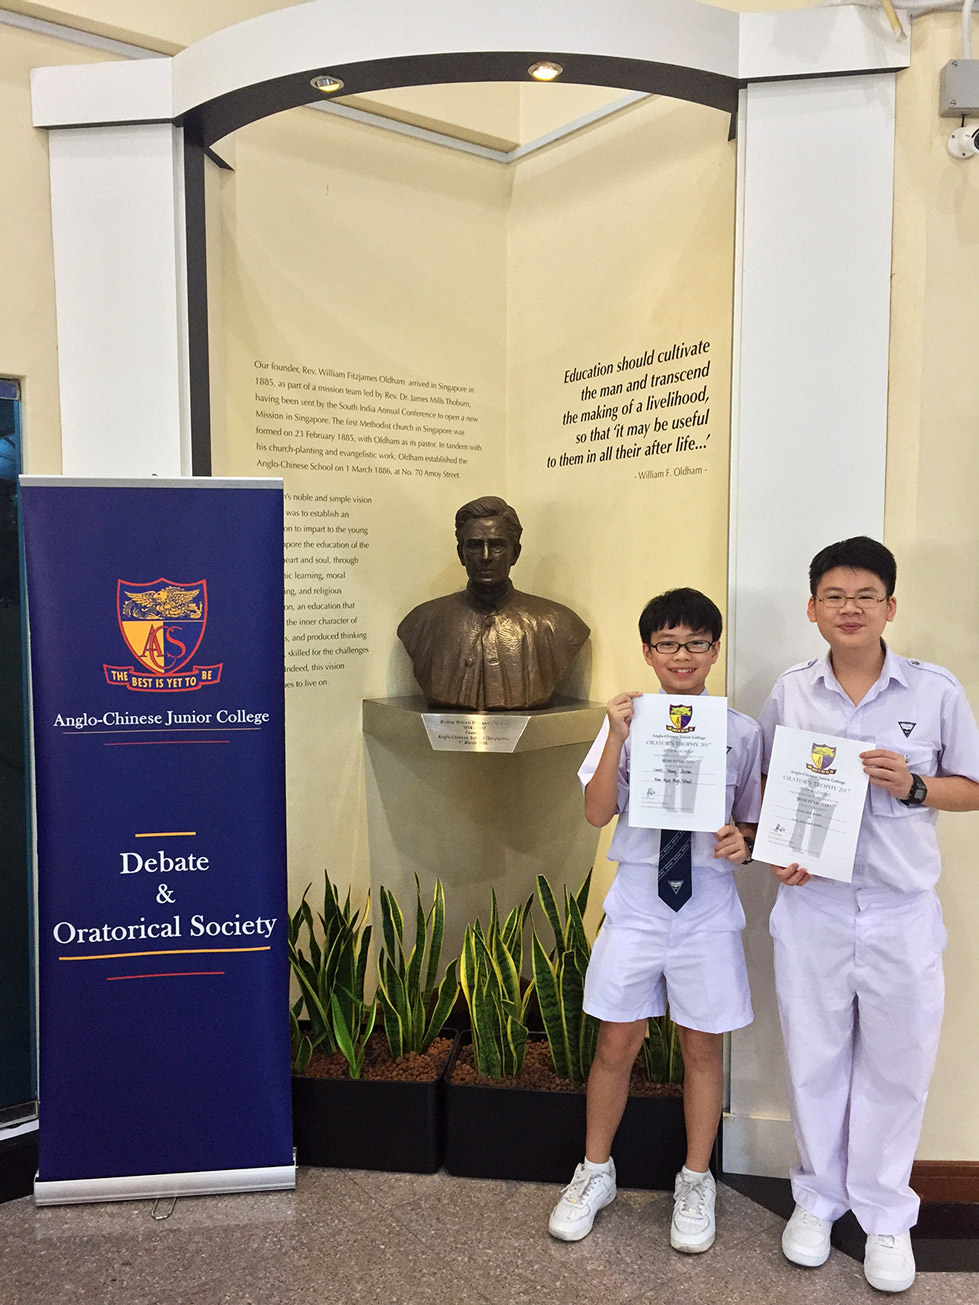 Chua-Kay-Siong-and-Lucas-Thong-Jiemin-are-the-semi-finalists-for-Orators-Trophy-2017.jpg